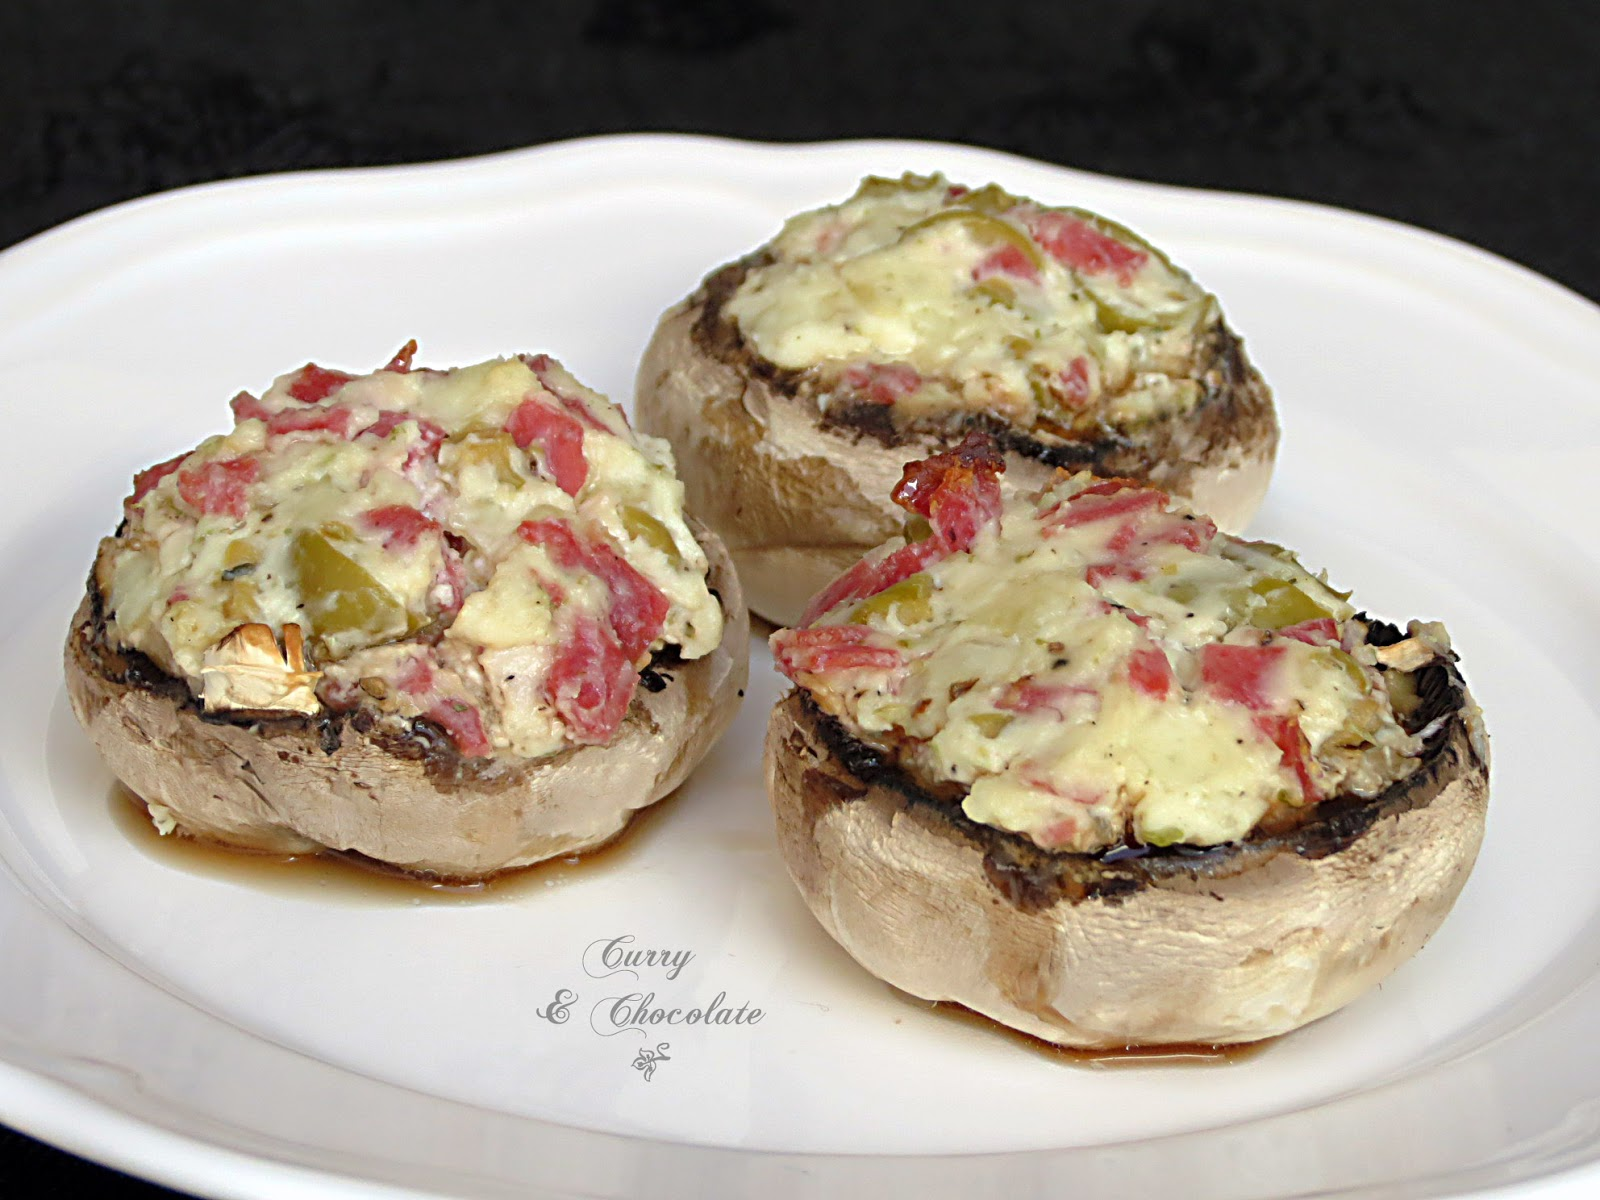 Stuffed mushrooms with cheese and pepperoni